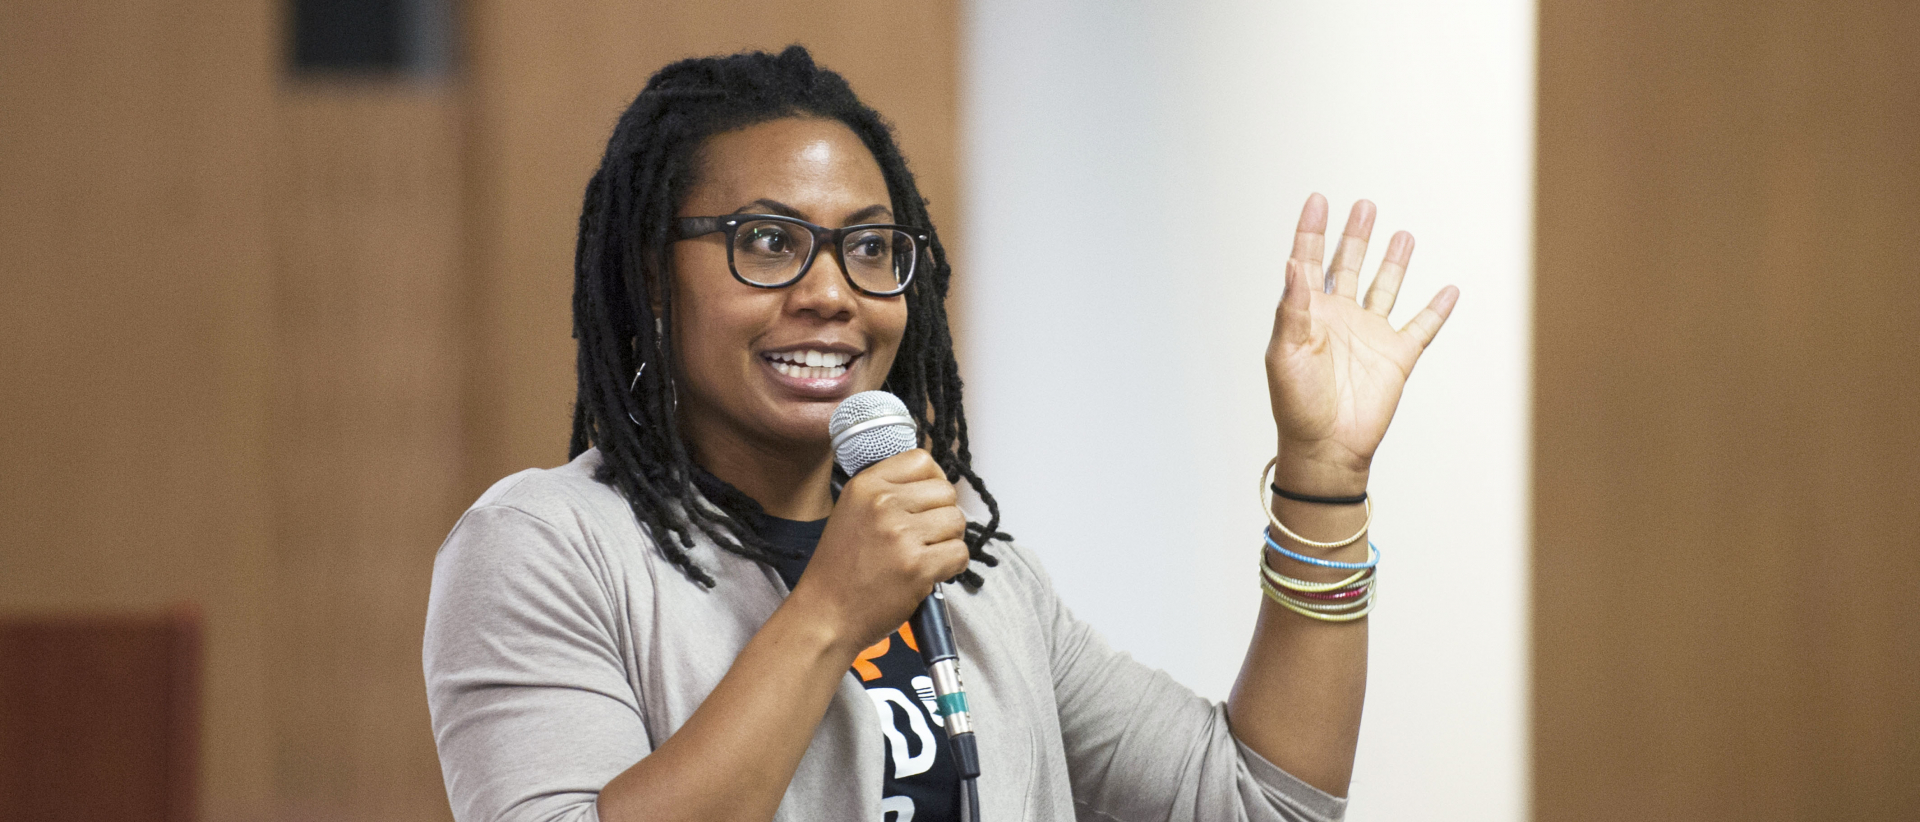 Keisha Green speaking at an event